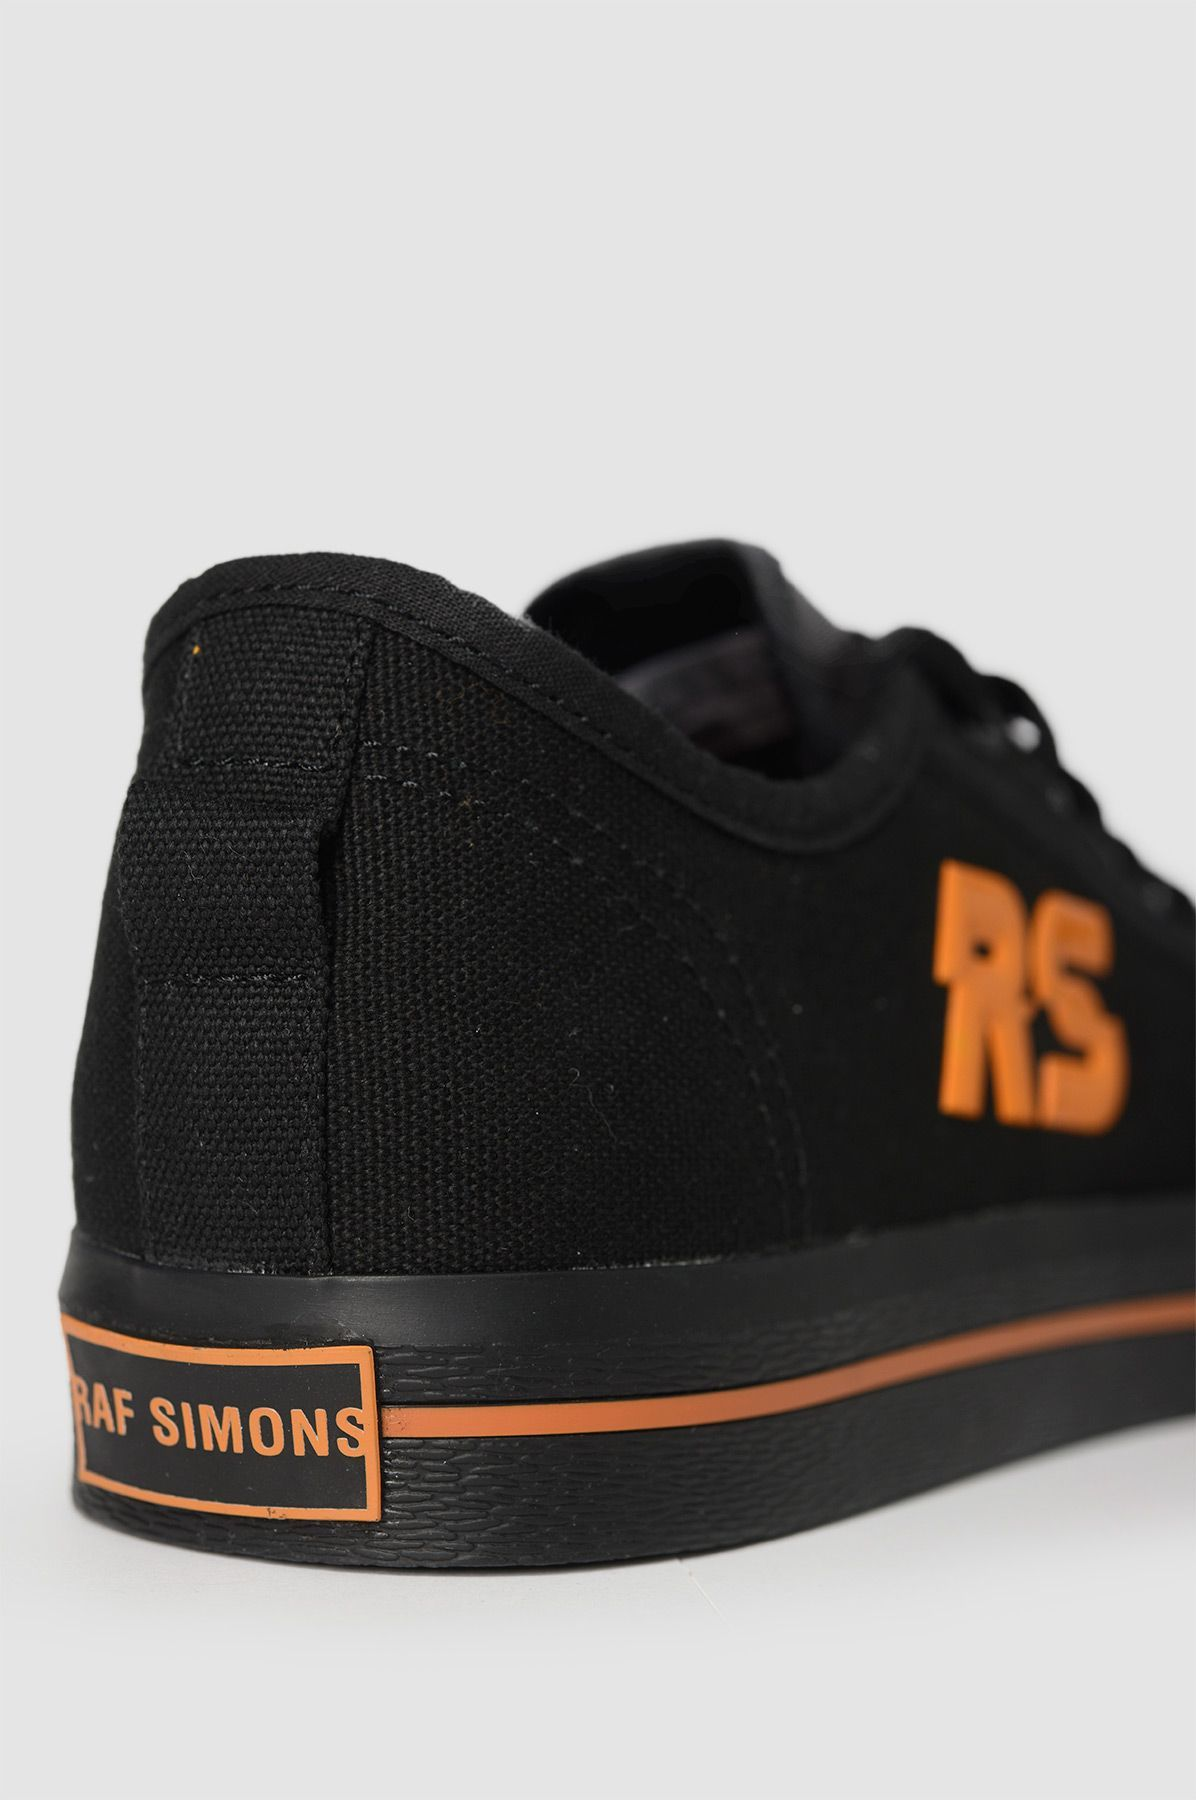 Man shop · ADIDAS X RAF SIMONS Spirit Low Black&Orange Sneakers.